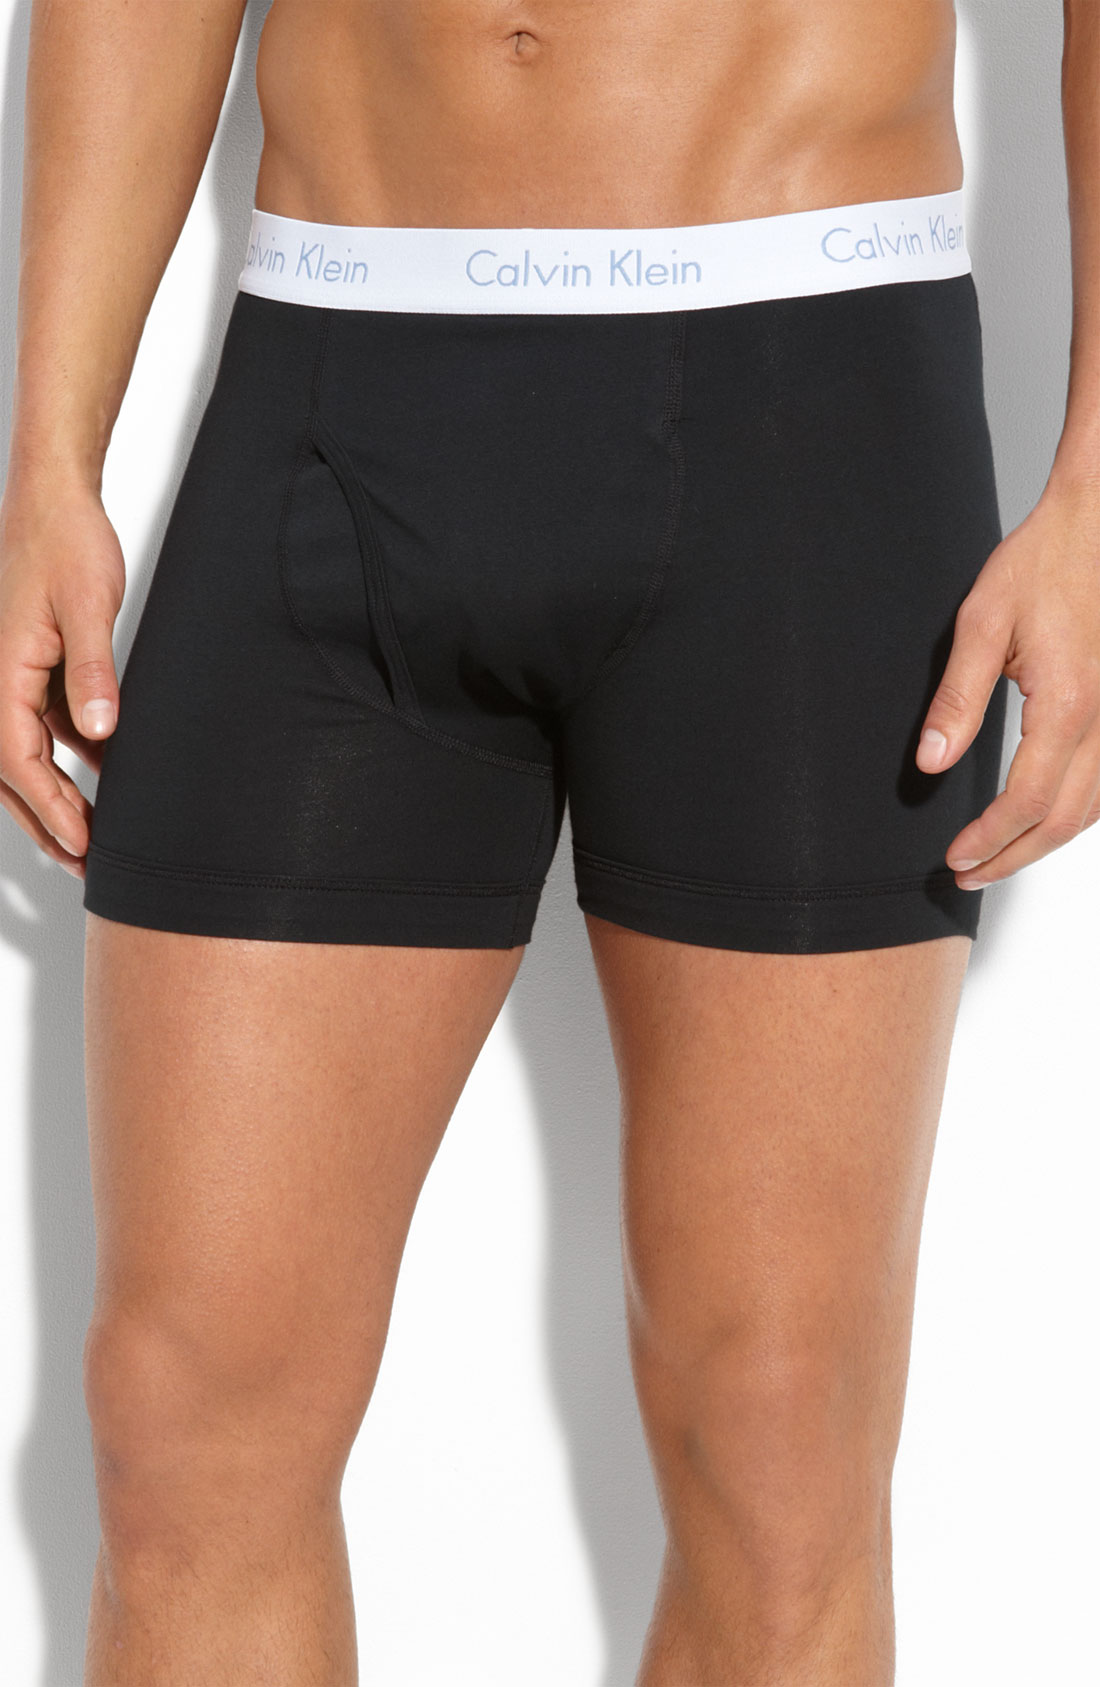 calvin klein flexfit boxer briefs in black for men lyst. Black Bedroom Furniture Sets. Home Design Ideas